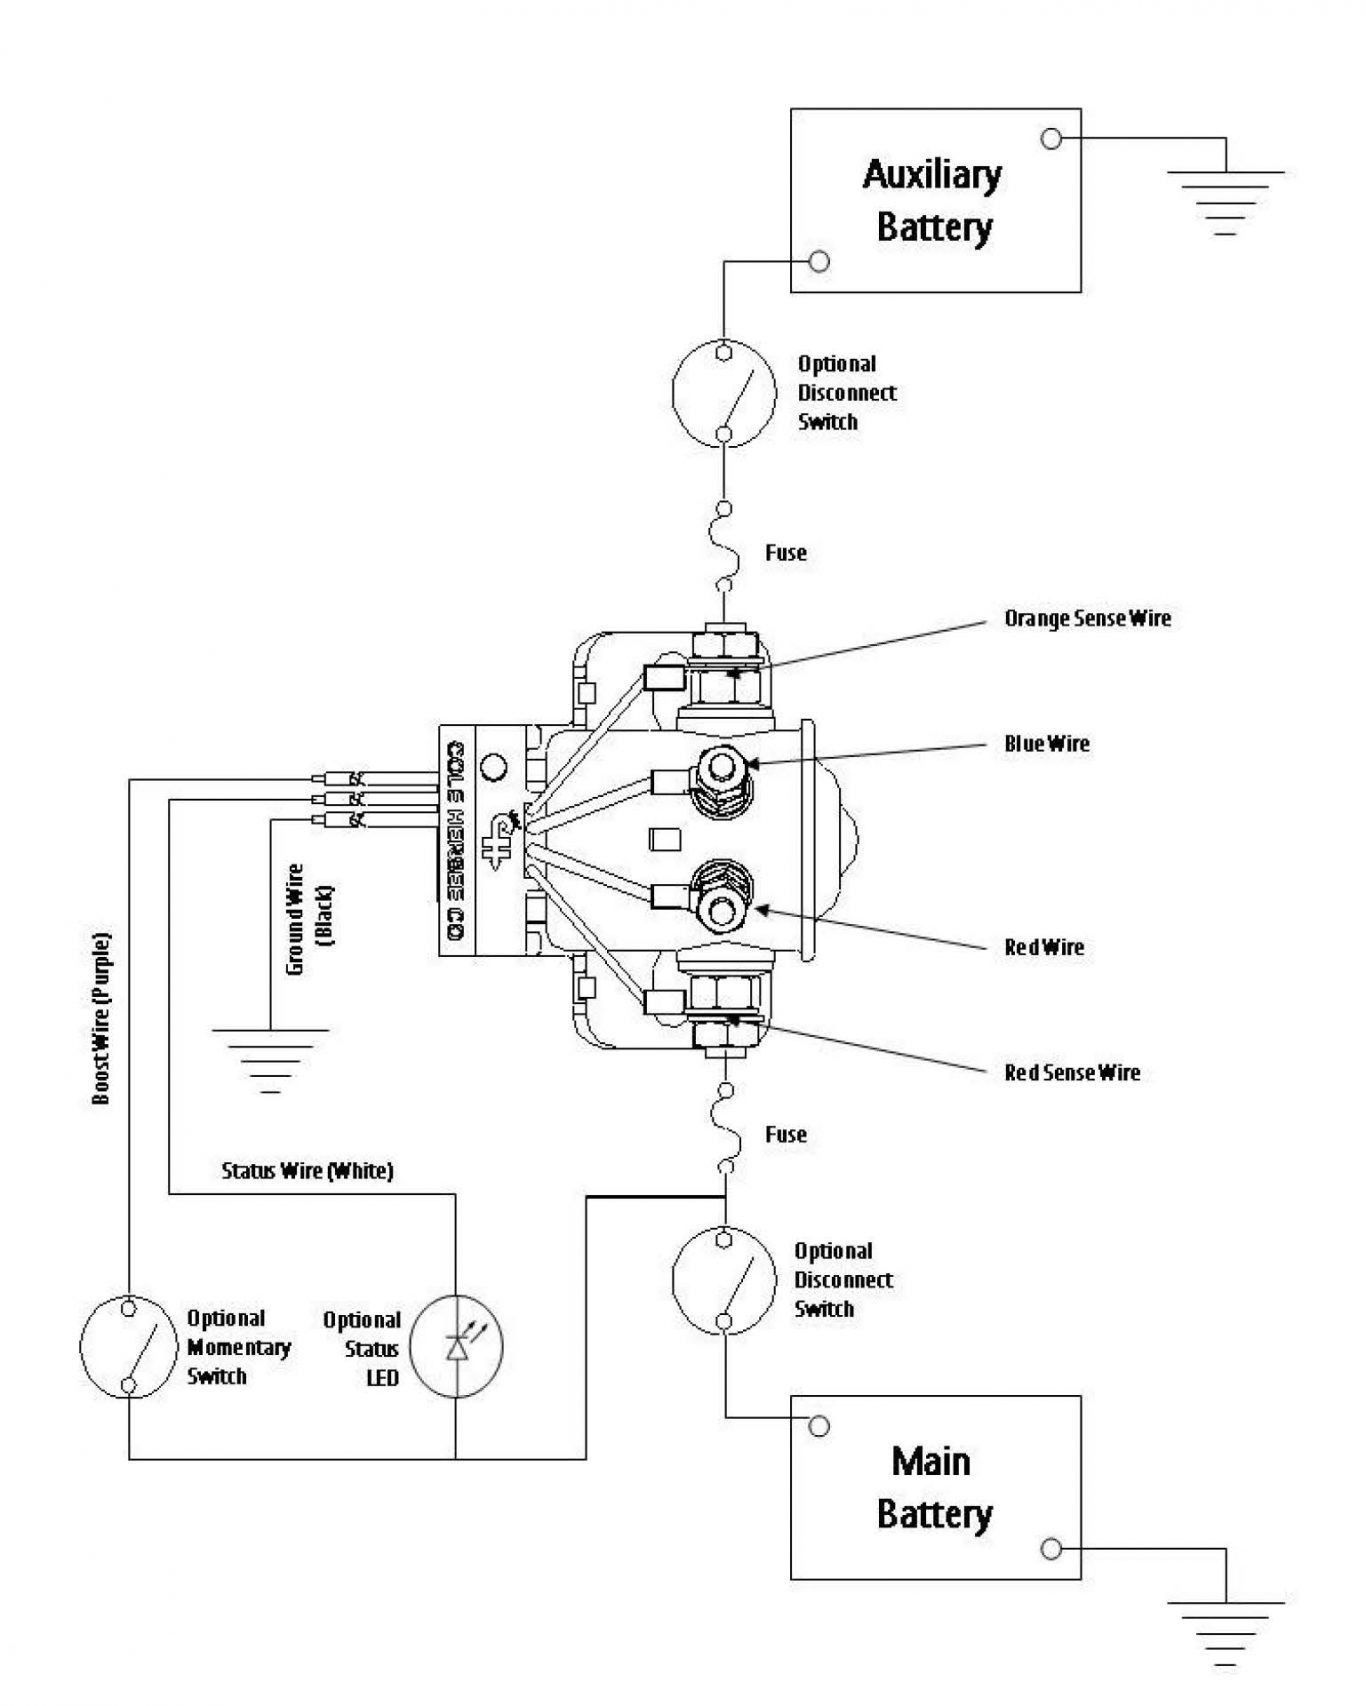 Double Pole Switch Wiring Diagram Unique In 2020 Electrical Wiring Diagram Diagram Boat Wiring